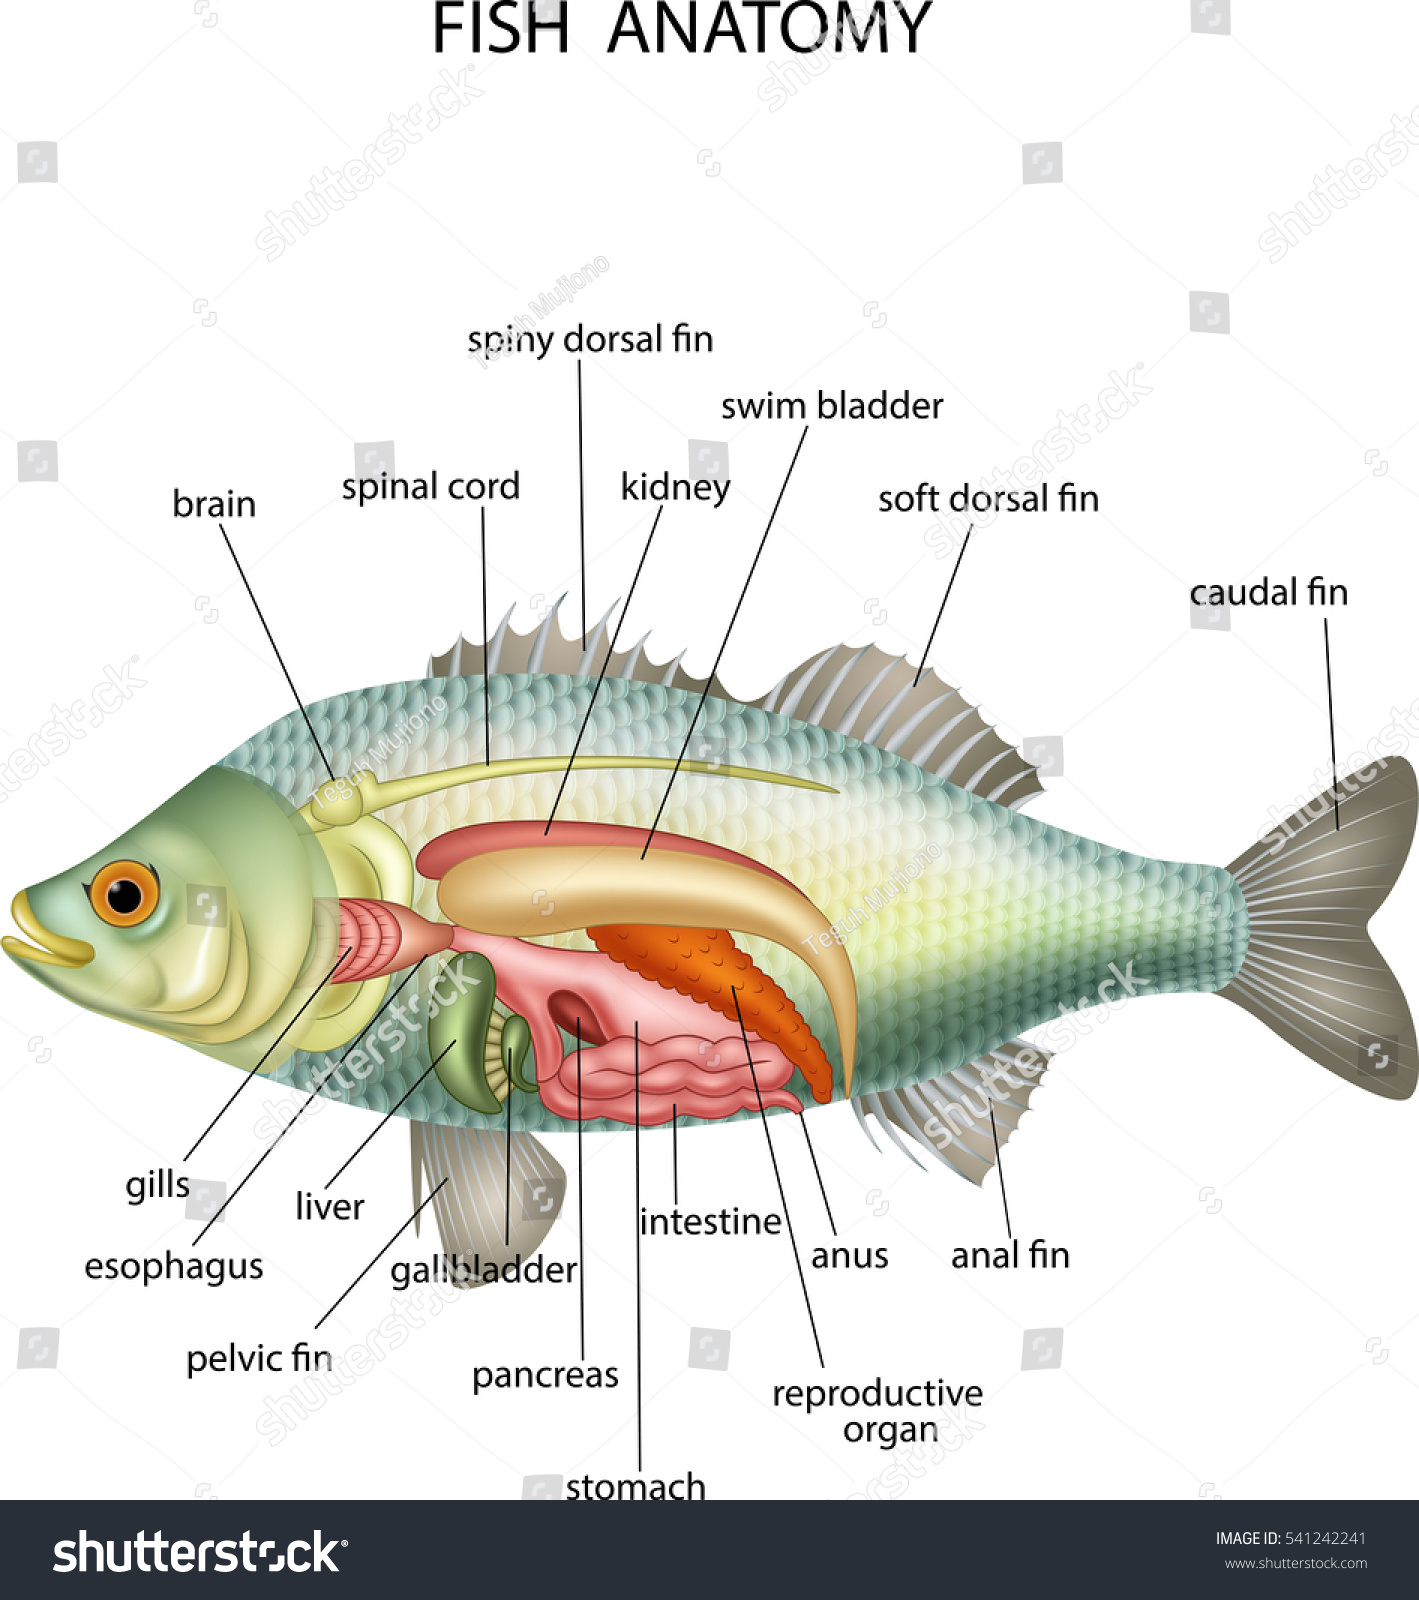 Anatomy Fish Stock Vector (Royalty Free) 541242241 - Shutterstock